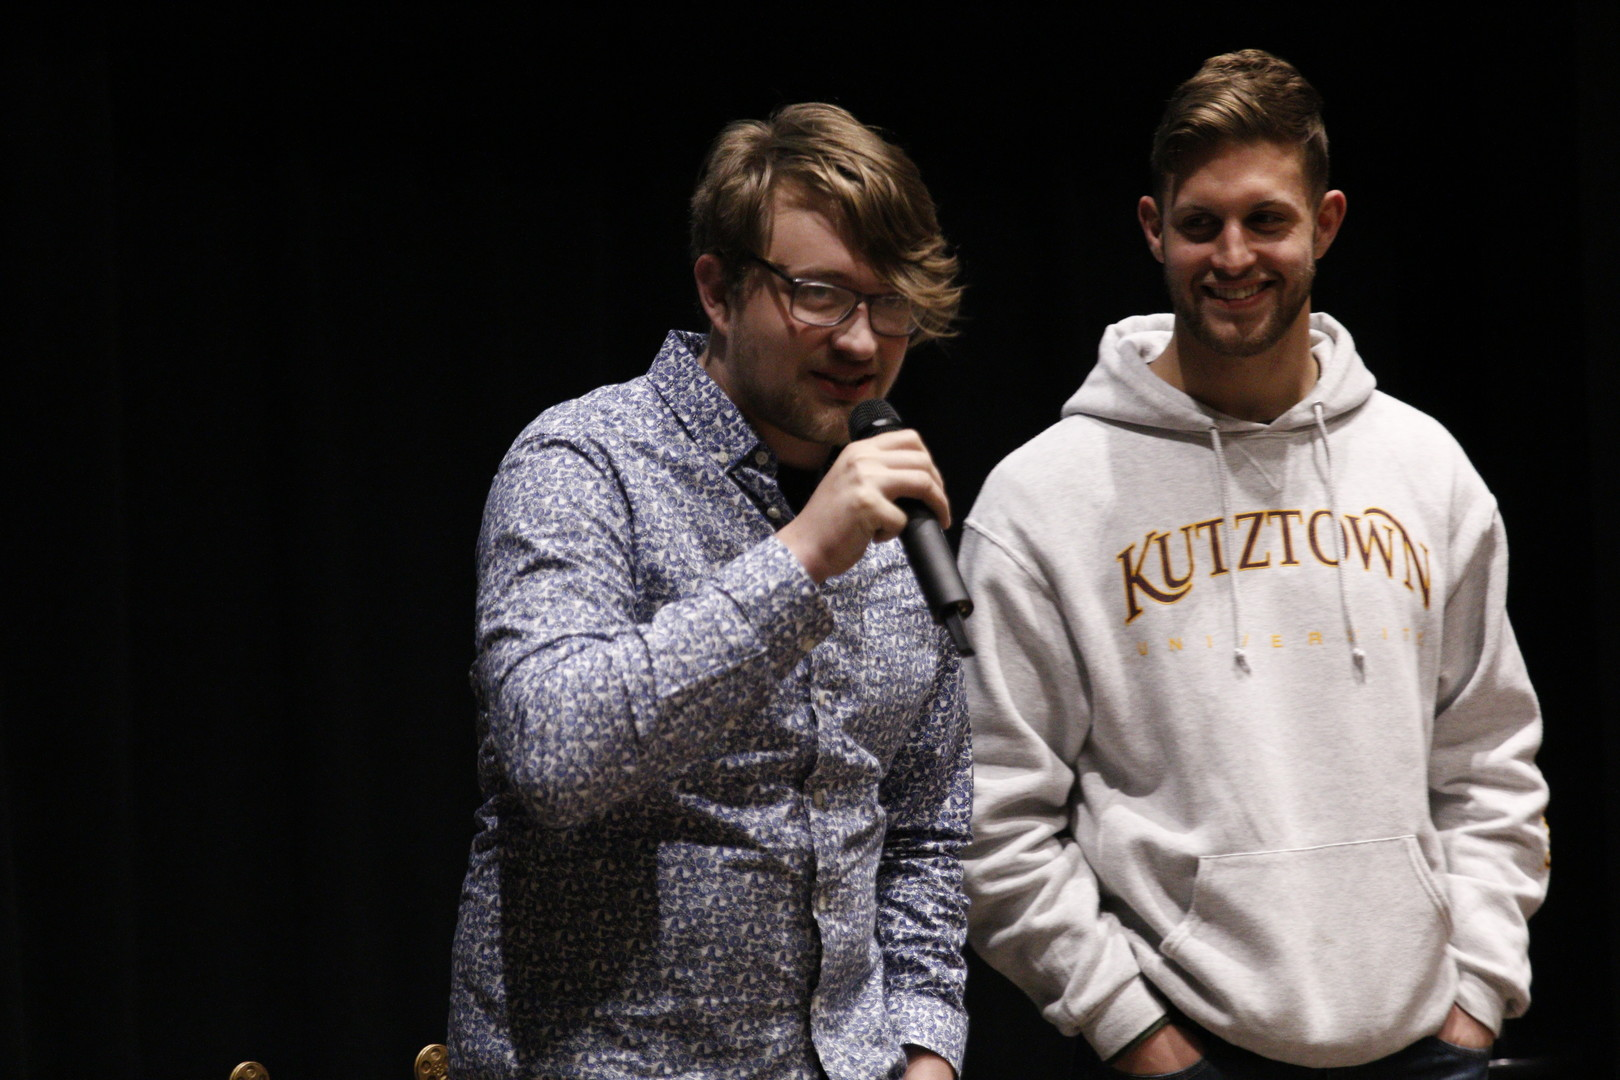 CTM student and KUFF participant Cole Reece answers questions